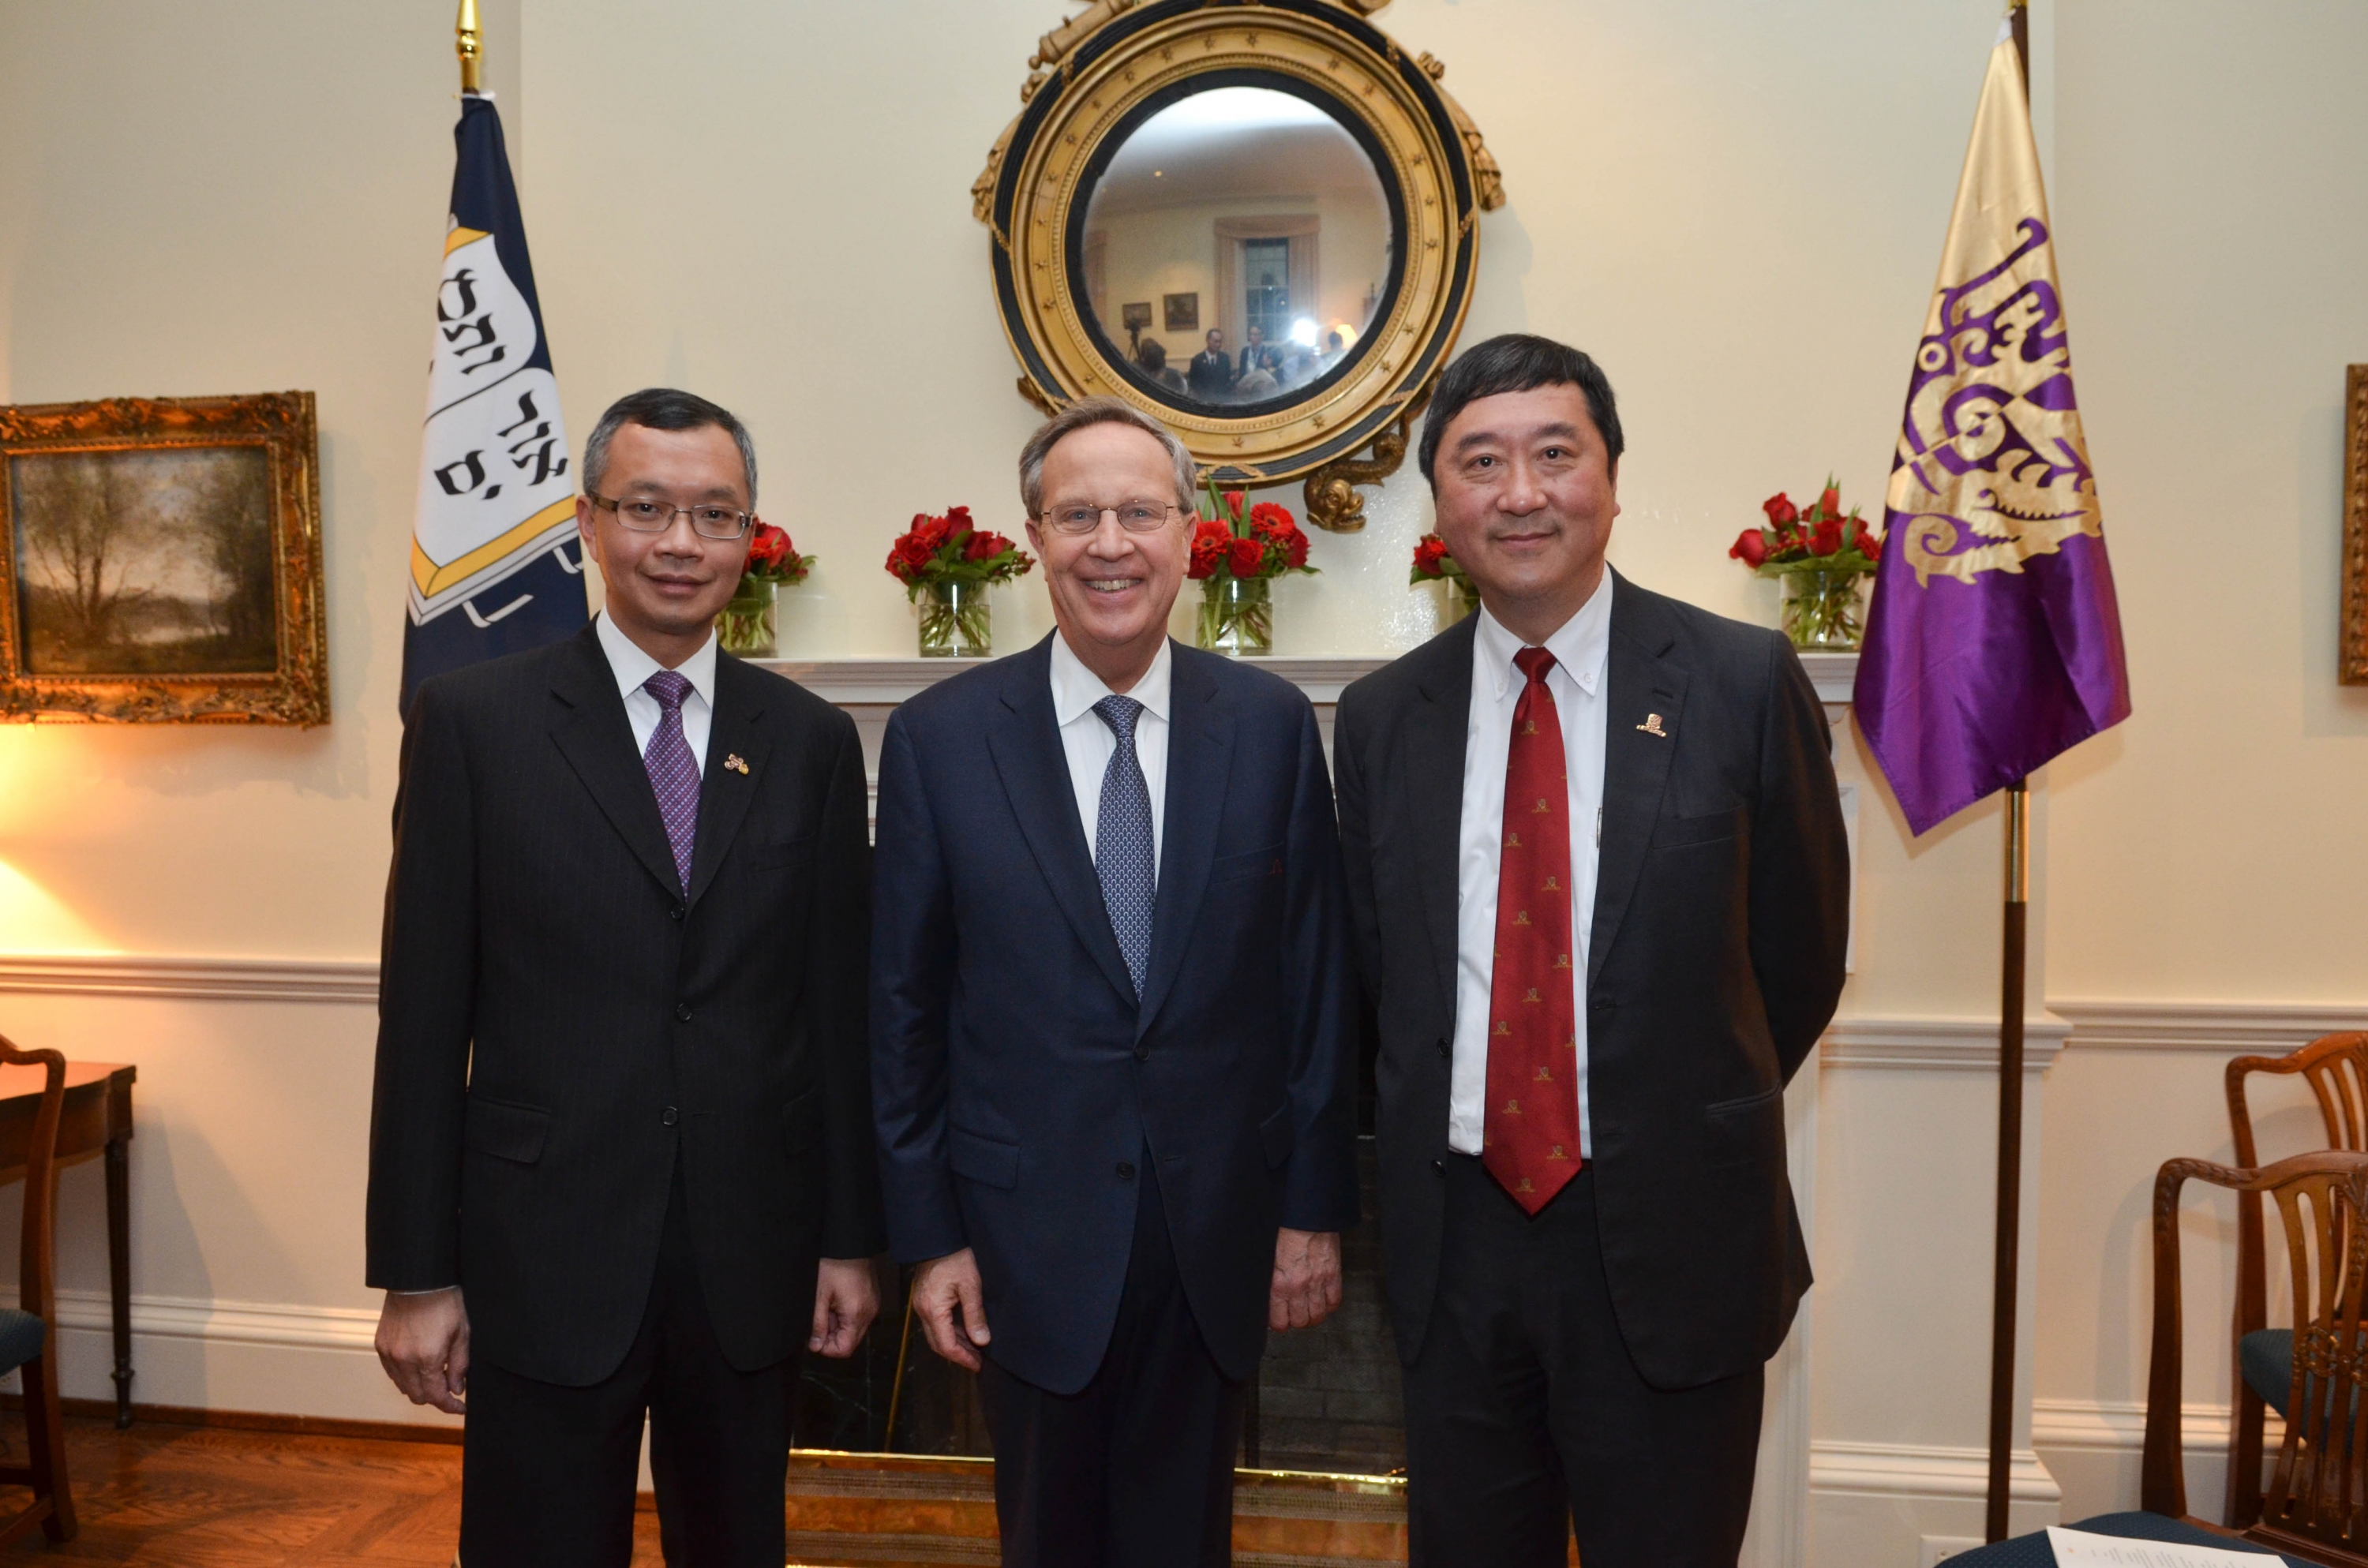 (From right) Prof. Joseph J.Y. Sung, Vice-Chancellor and President, CUHK; Prof. Richard Charles Levin, President of Yale University; and Mr. Eric S.P. Ng, Registrar and Secretary, CUHK.